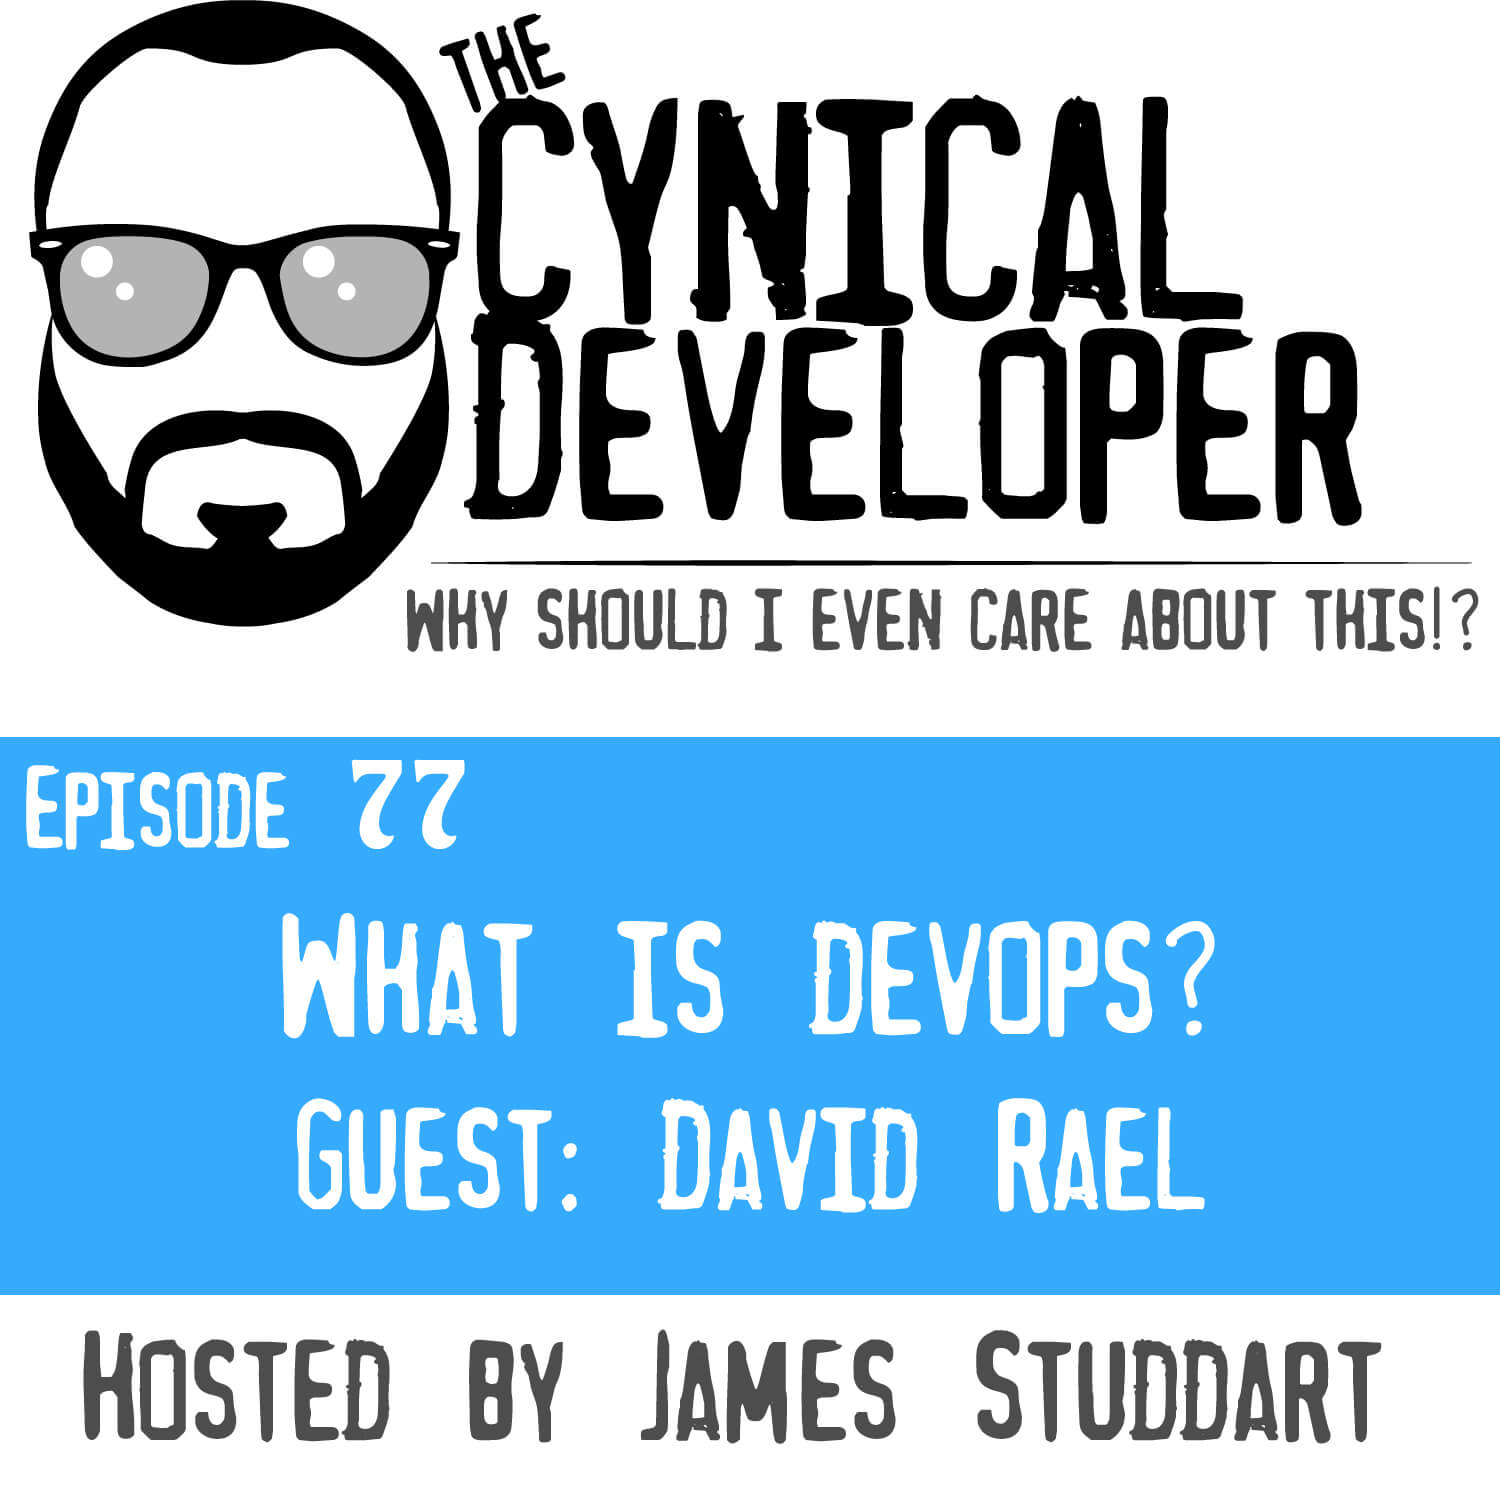 Episode 77 - What is Devops?